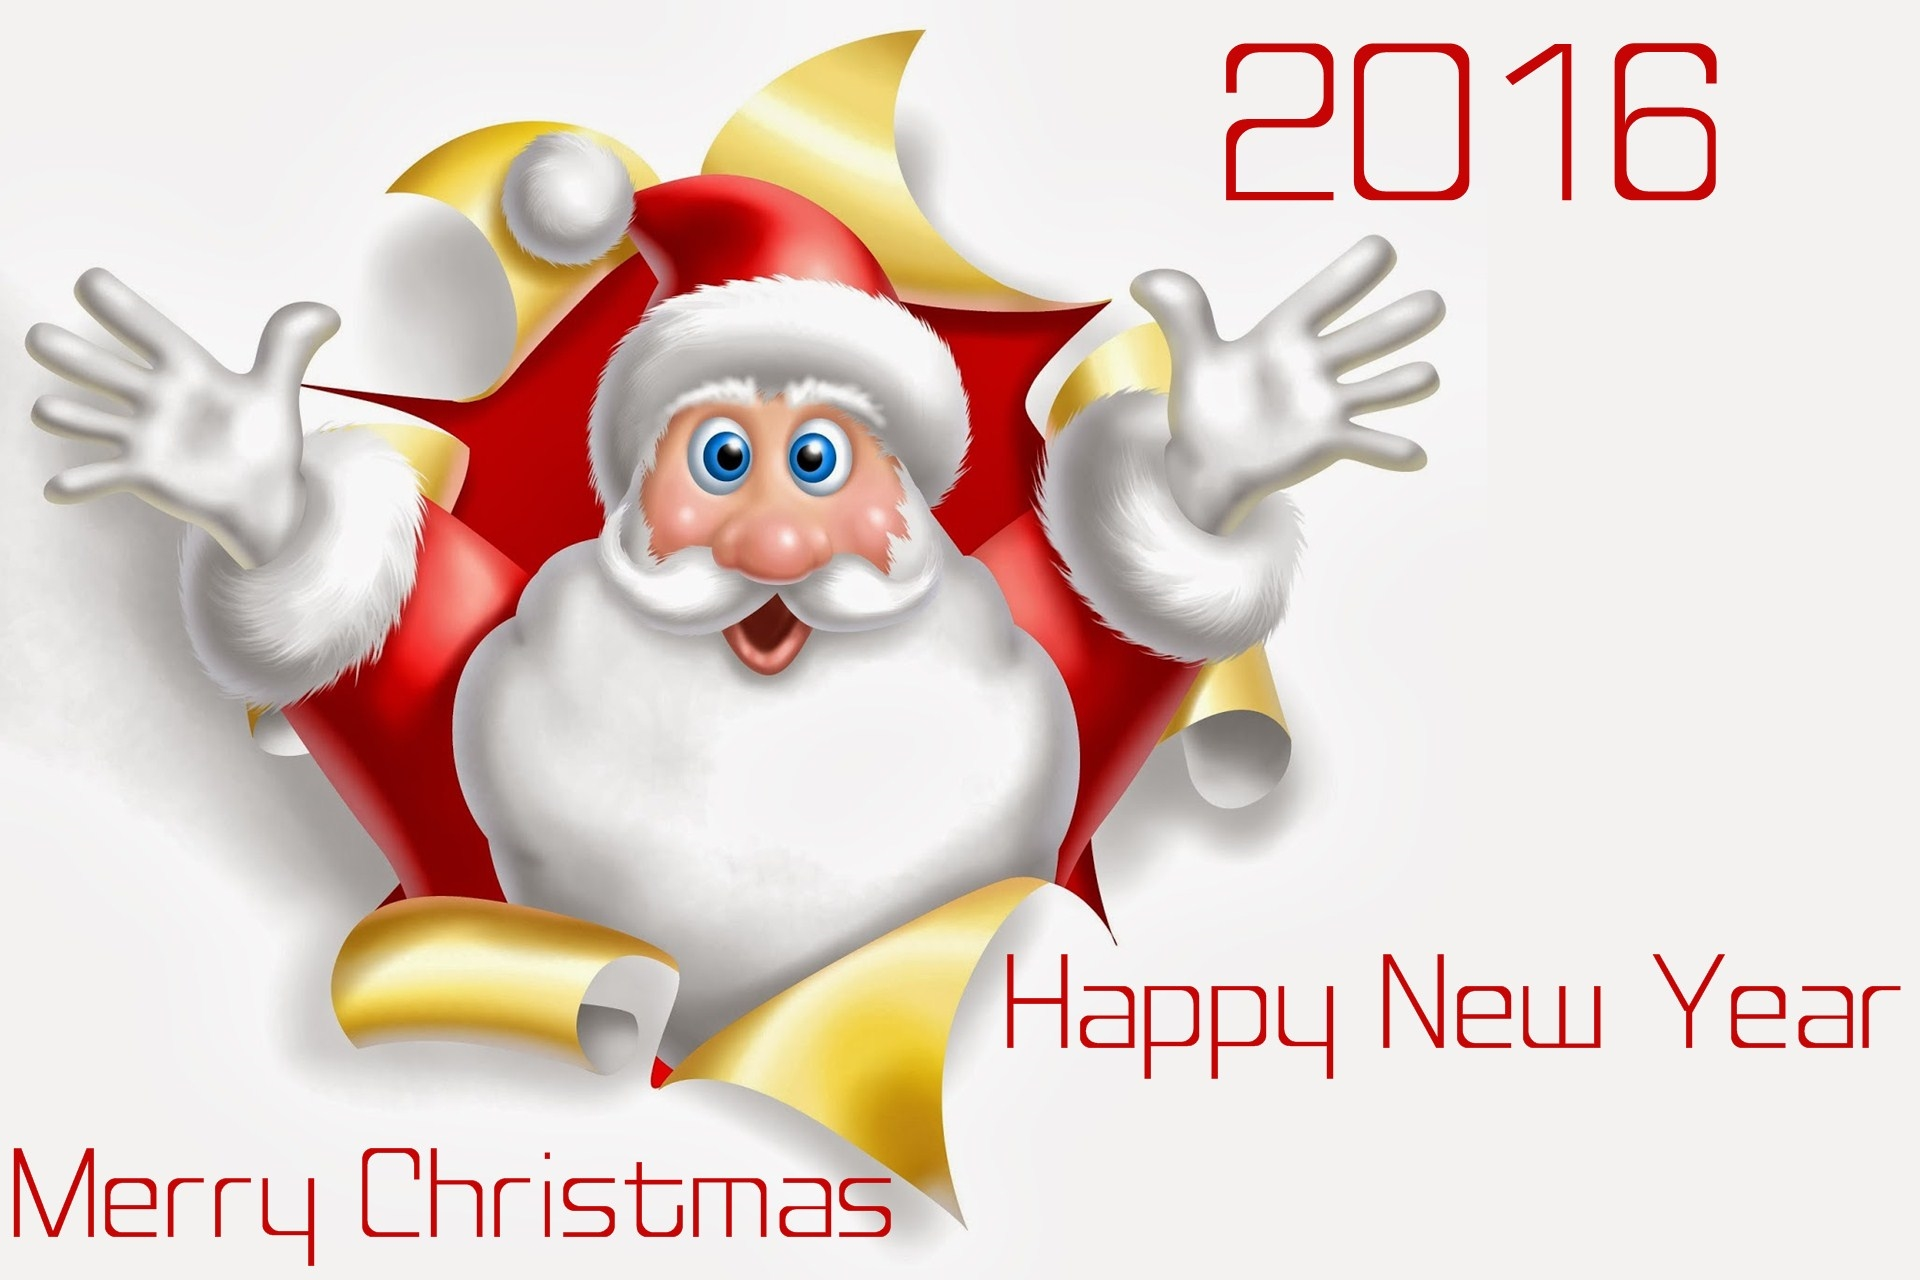 merry christmas and happy new year 2016 santa wishes